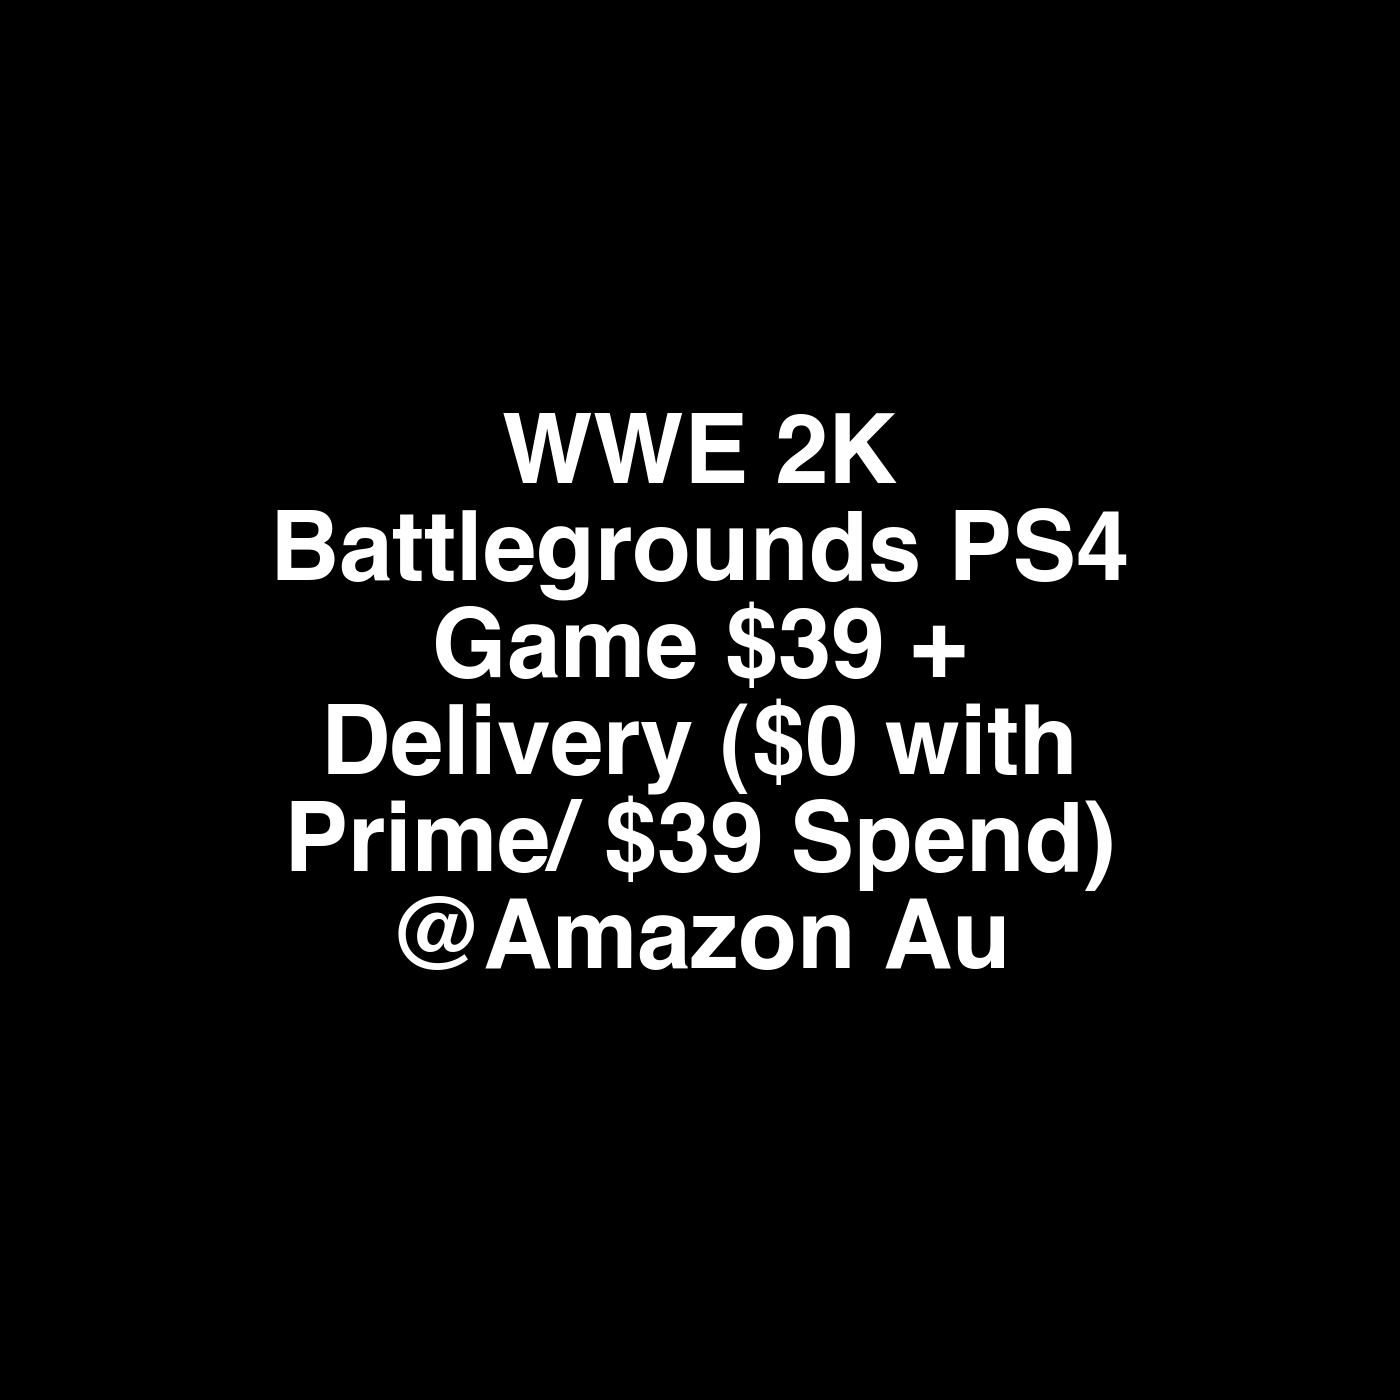 Wwe 2k Battlegrounds Ps4 Game 39 Delivery 0 With Prime 39 Spend Amazon Au Https Ift Tt 3mqfqrx Just Went Buy This For Xmas And Notic Ps4 Games Wwe Ps4